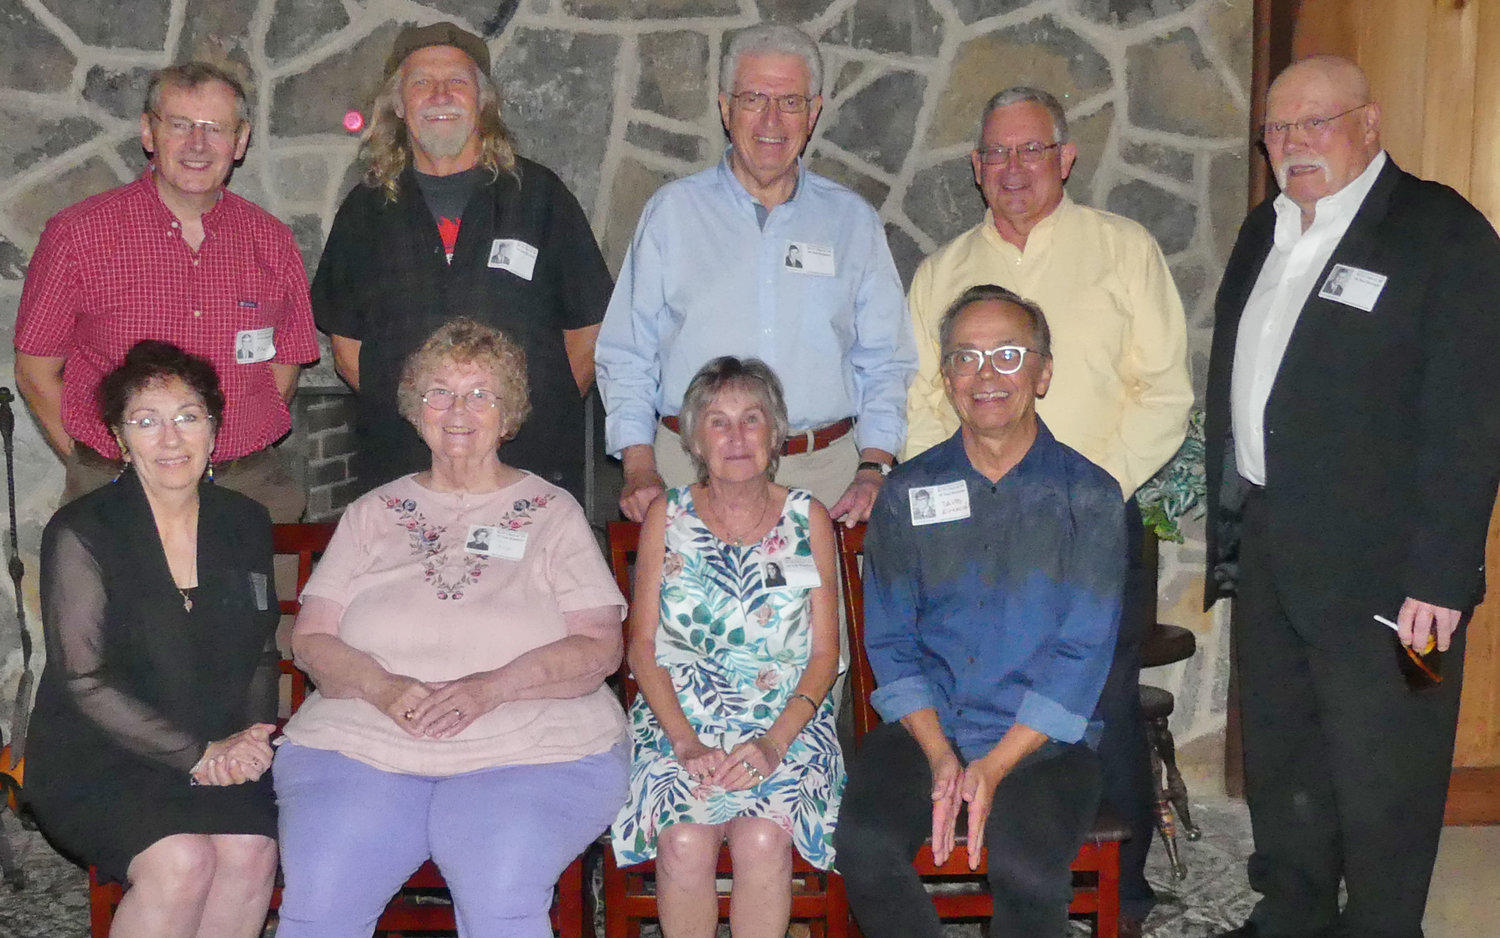 HOME TO CELEBRATE — Rekindling lasting friendships as well as making new ones were members of the Rome Catholic High School Class of 1969, which gathered for its 50-year-reunion on Saturday, Aug. 10, at the Teugega Country Club.  Those celebrating the milestone event included, from left, front row: Debra Booton McCoy, Eagle Bay; Diane Schoff, Latham; Mary Krenitsky Perrone, Sylvan Beach; and David Evanciew, Cazenovia; back row: Rev. Peter Schneible, St. Bonaventure; Joseph Baltrushes, Malibu, Calif.; Rev. Paul Angelicchio; Mark Werstein, Garnet Valley, Pa.; and Joseph Christopher, Canastota.